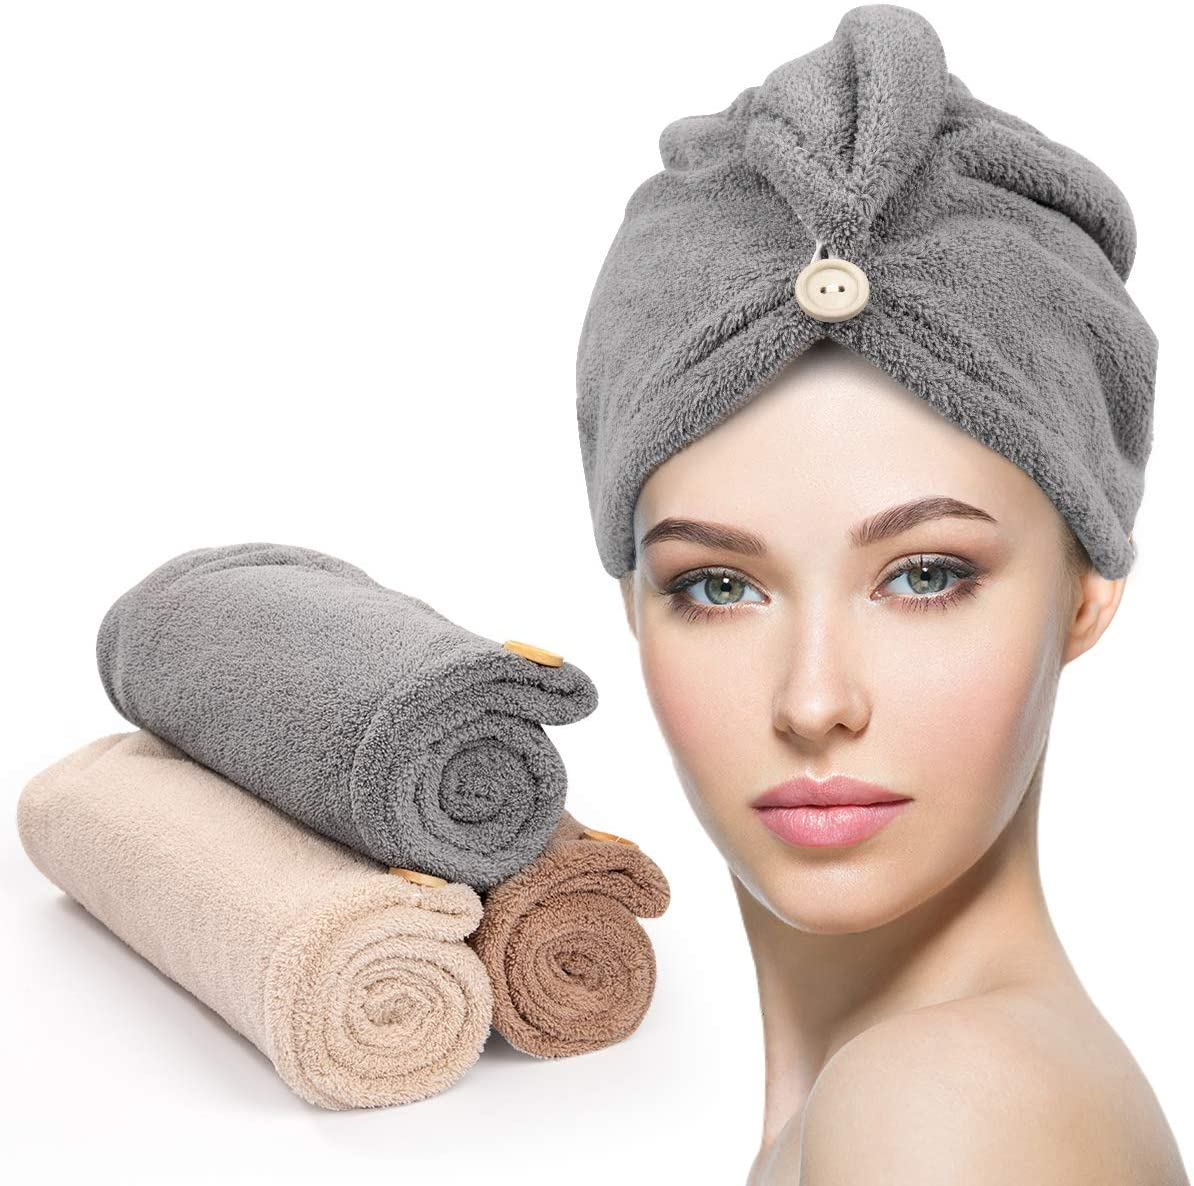 3 Pack Hair Drying Towels, Unimi Hair Towel with Button, Super Absorbent Microfiber Hair Towel for Curly Hair, Fast Drying Hair Wraps for Women Girls, Microfiber Towel for Hair, Gray & Brown & Camel